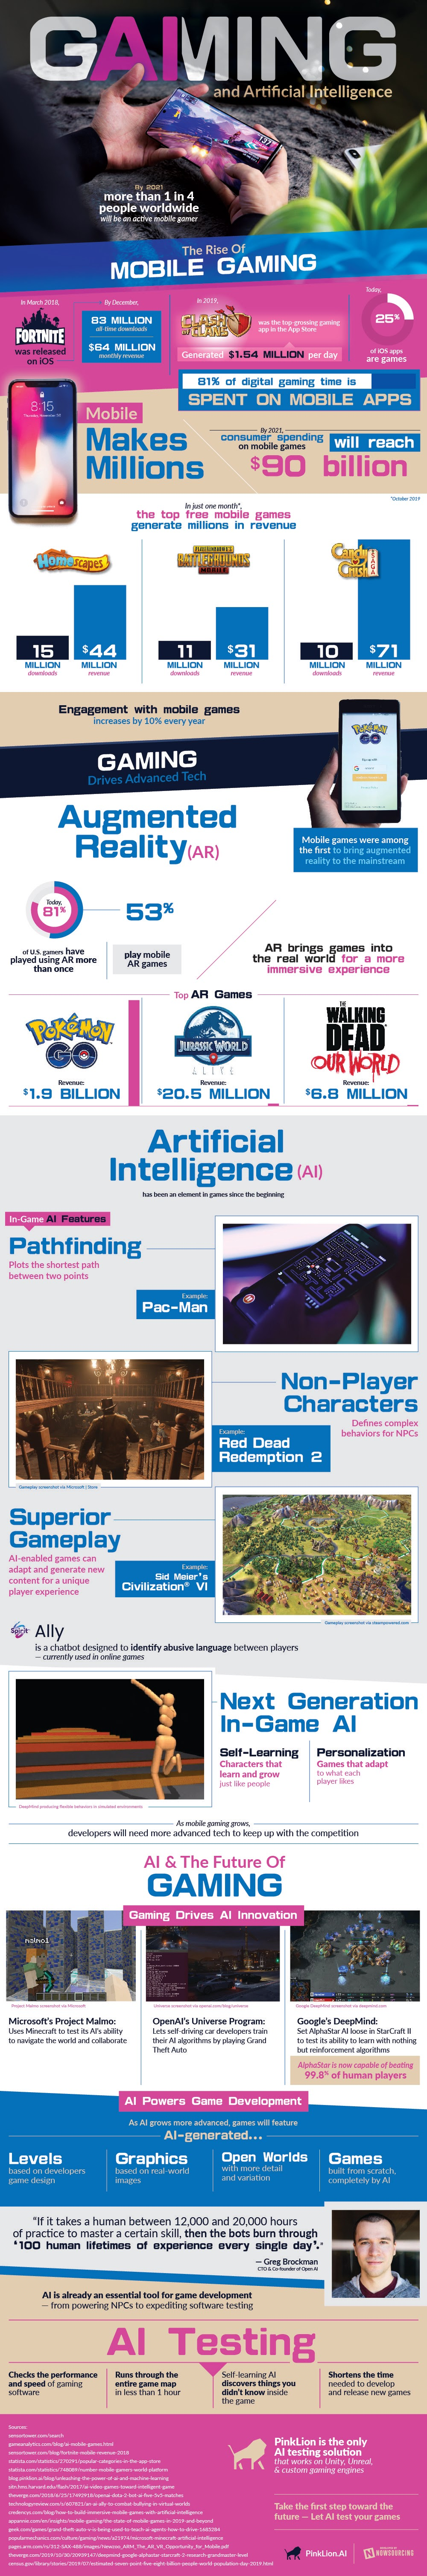 Artificial Intelligence (Ai) Revolutionizing the Gaming Industry #infographic